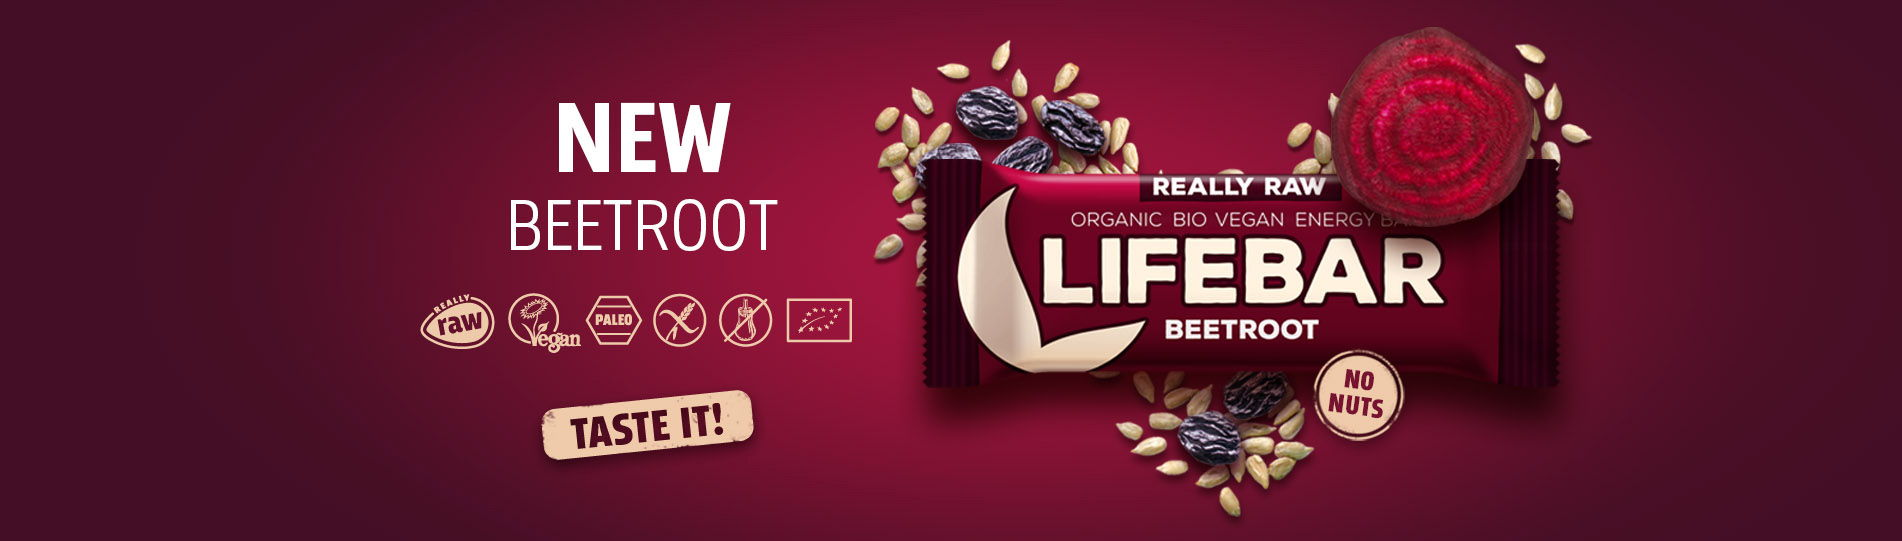 Beetroot Lifebar